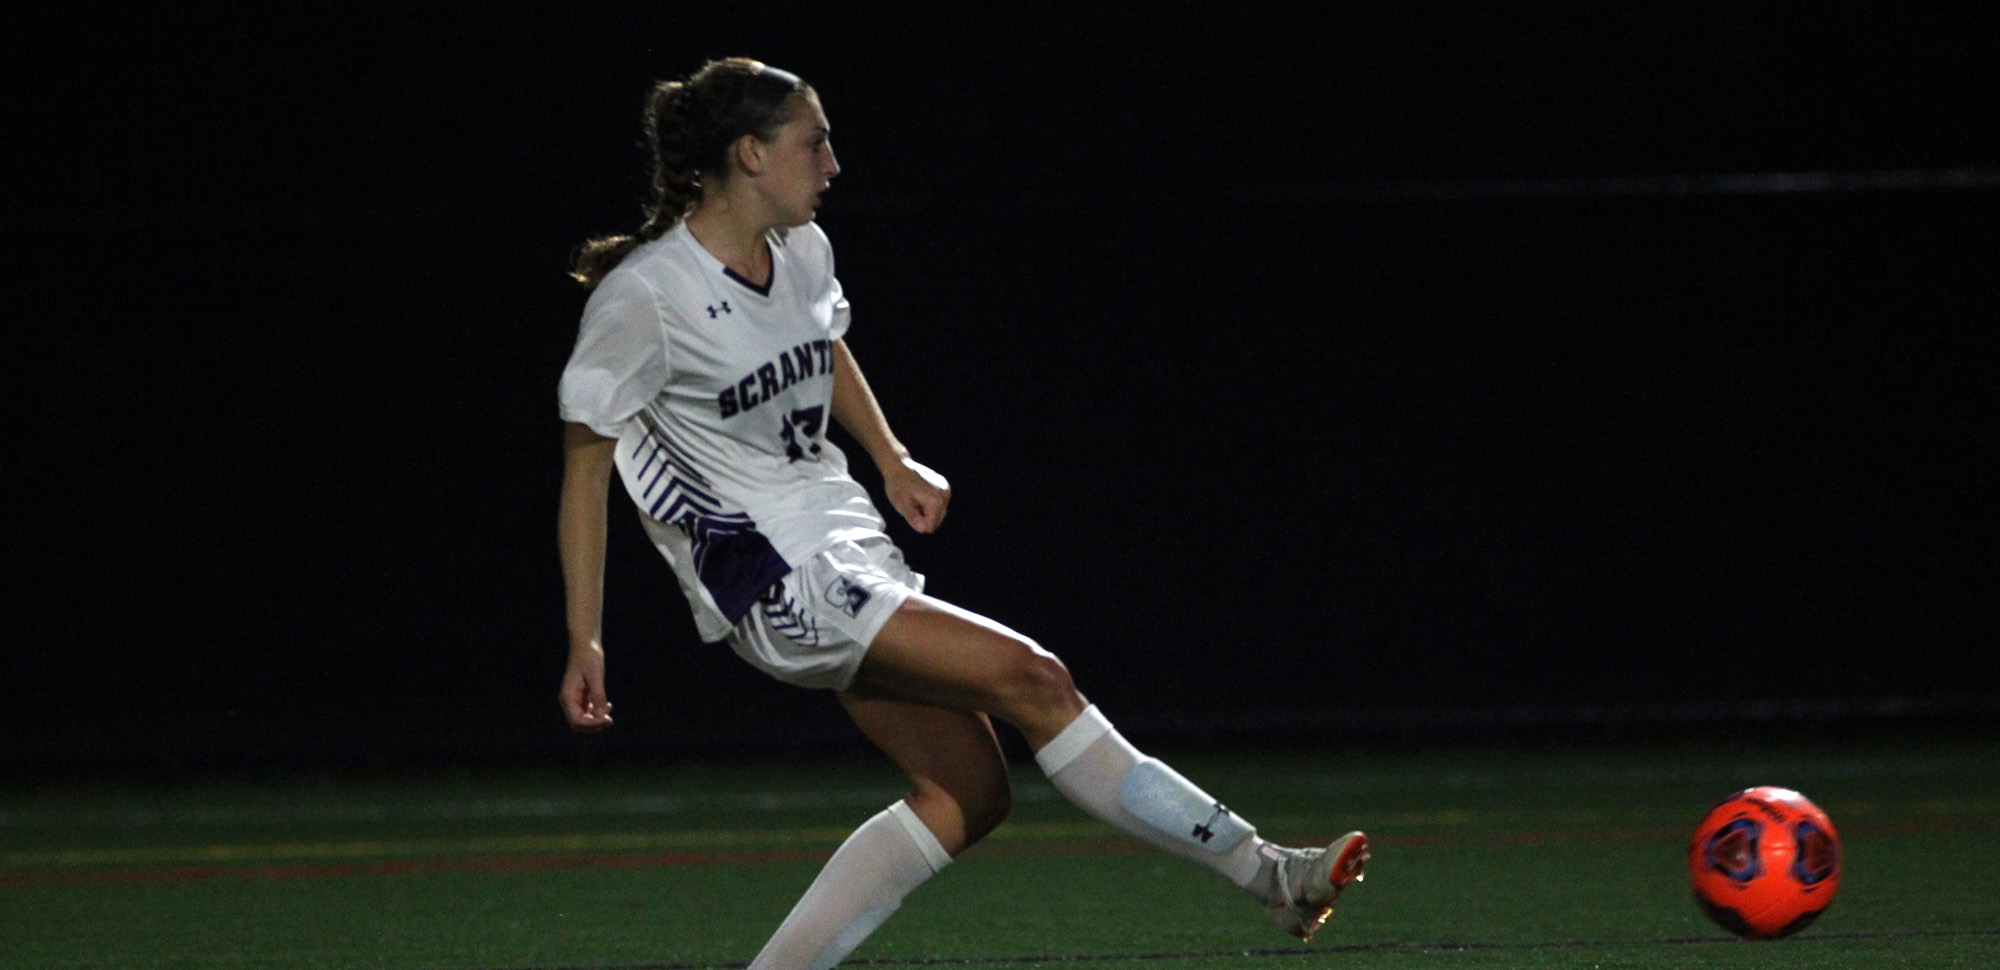 Hope Drewes set up Corinne McDonald for the game's only goal in Scranton's 1-0 win at Susquehanna on Saturday.